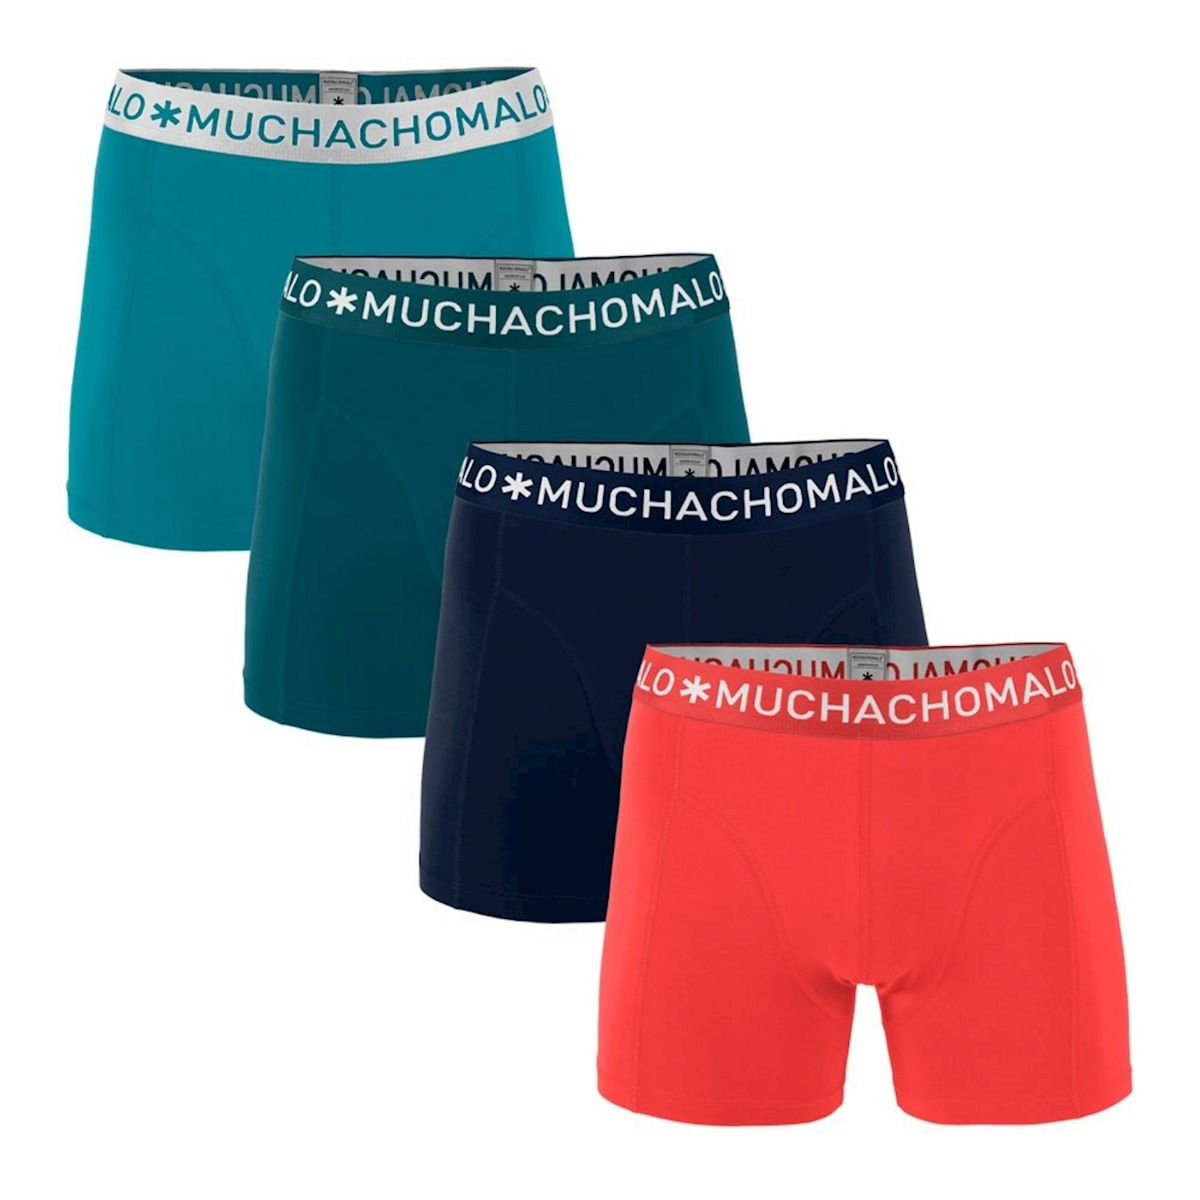 Muchachomalo 4-pack boxershorts solid - blauw groen navy rood